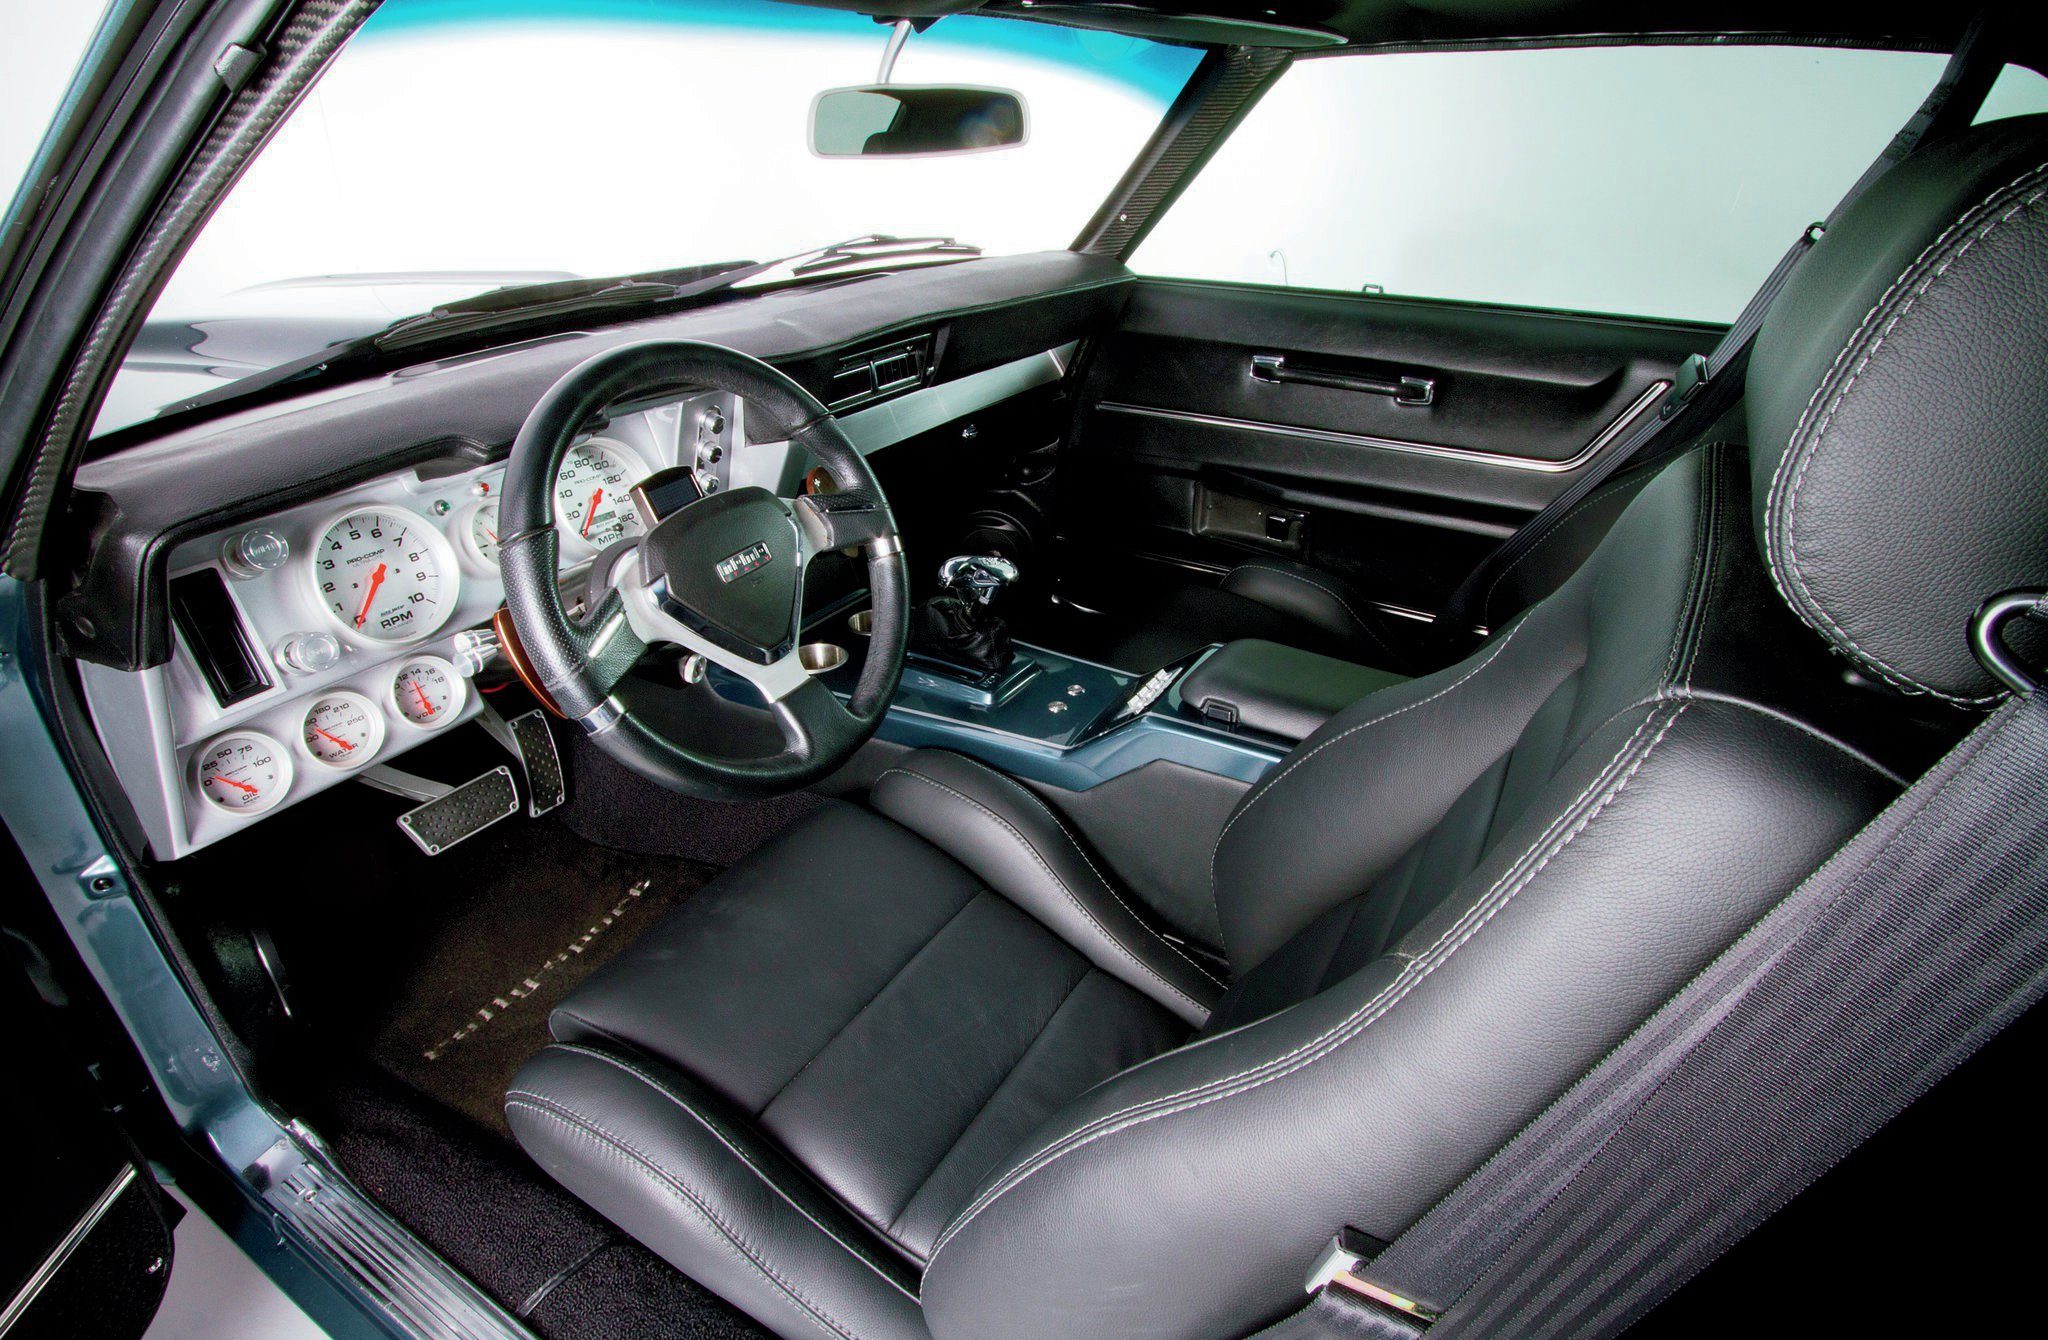 The interior has all the right modern upgrades, including Auto Meter gauges in a Detroit Speed & Engineering pod, Vintage Air A/C, ididit tilt steering column, MOMO steering wheel, and Corbeau GTS II seats leather wrapped with contrast stitching by Bill Dunn upholstery shop.